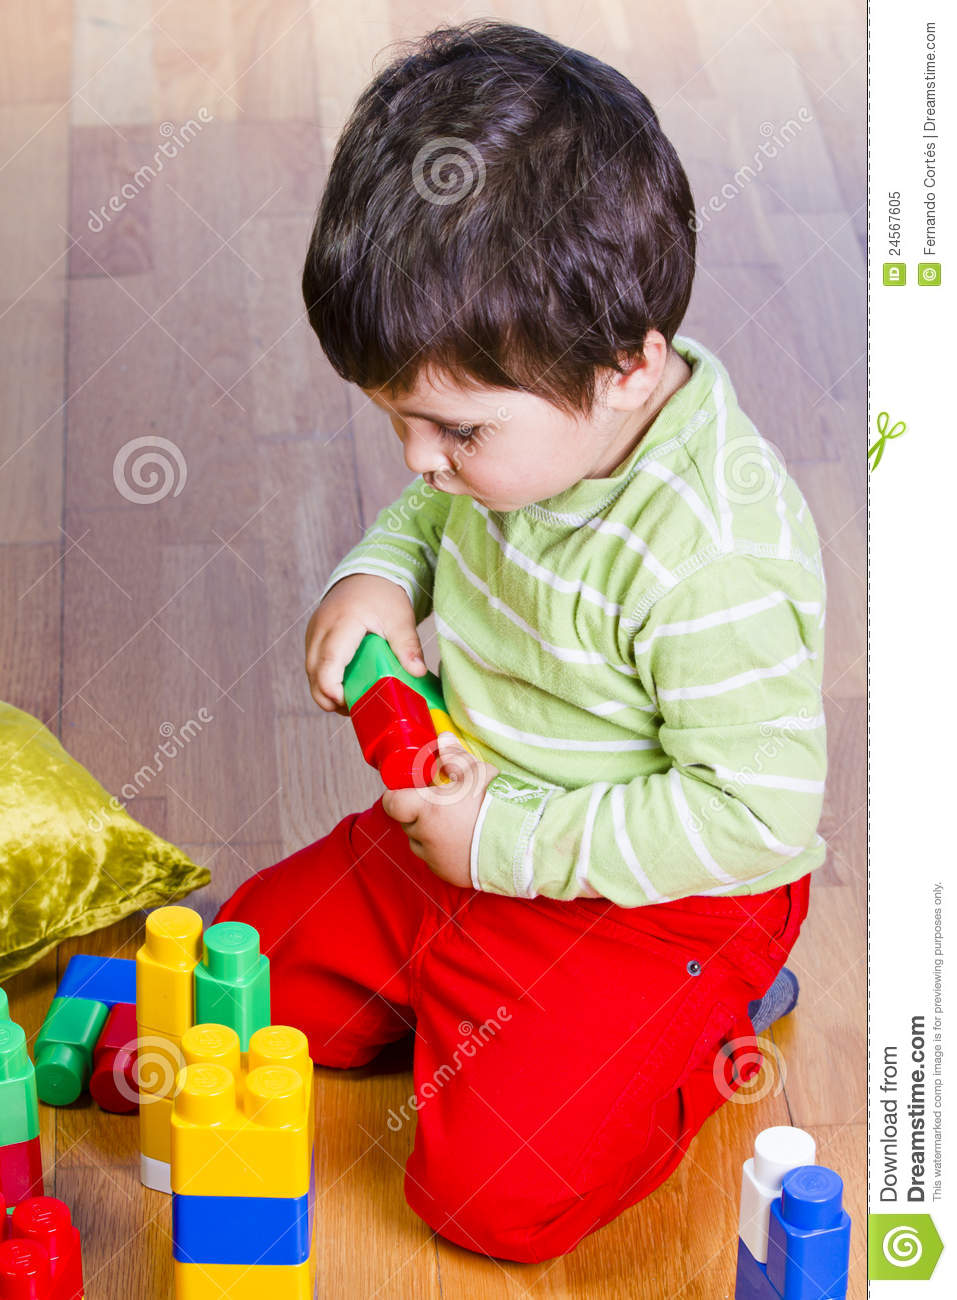 Building Toys For Little Boys : A happy little boy is building colorful toy stock image